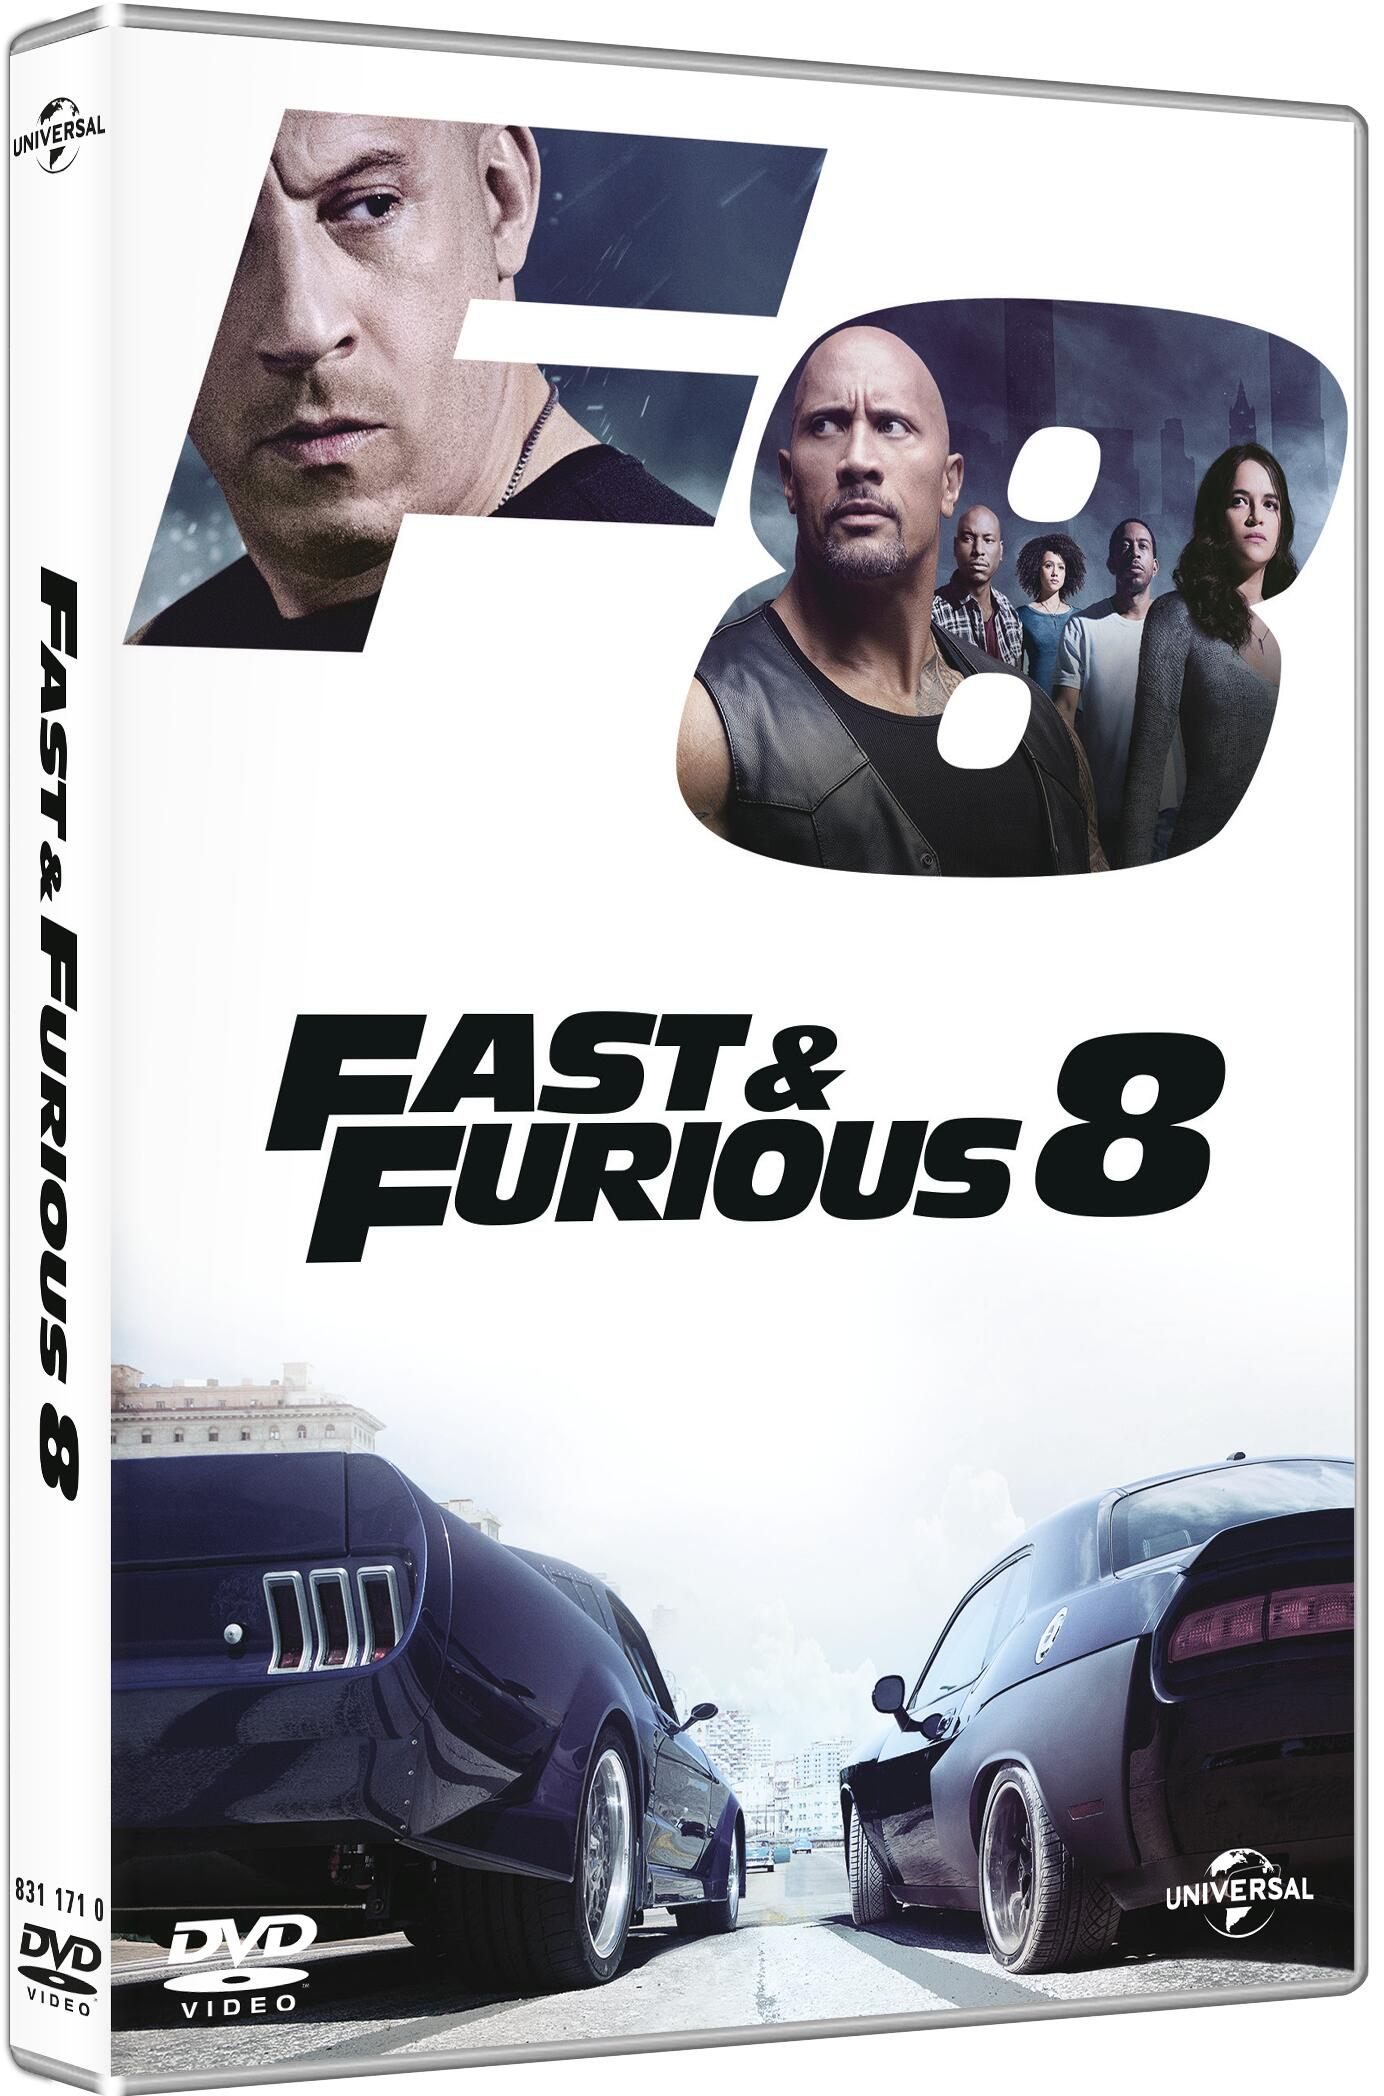 fast furious 8 dvd dvd film di f gary gray avventura ibs. Black Bedroom Furniture Sets. Home Design Ideas